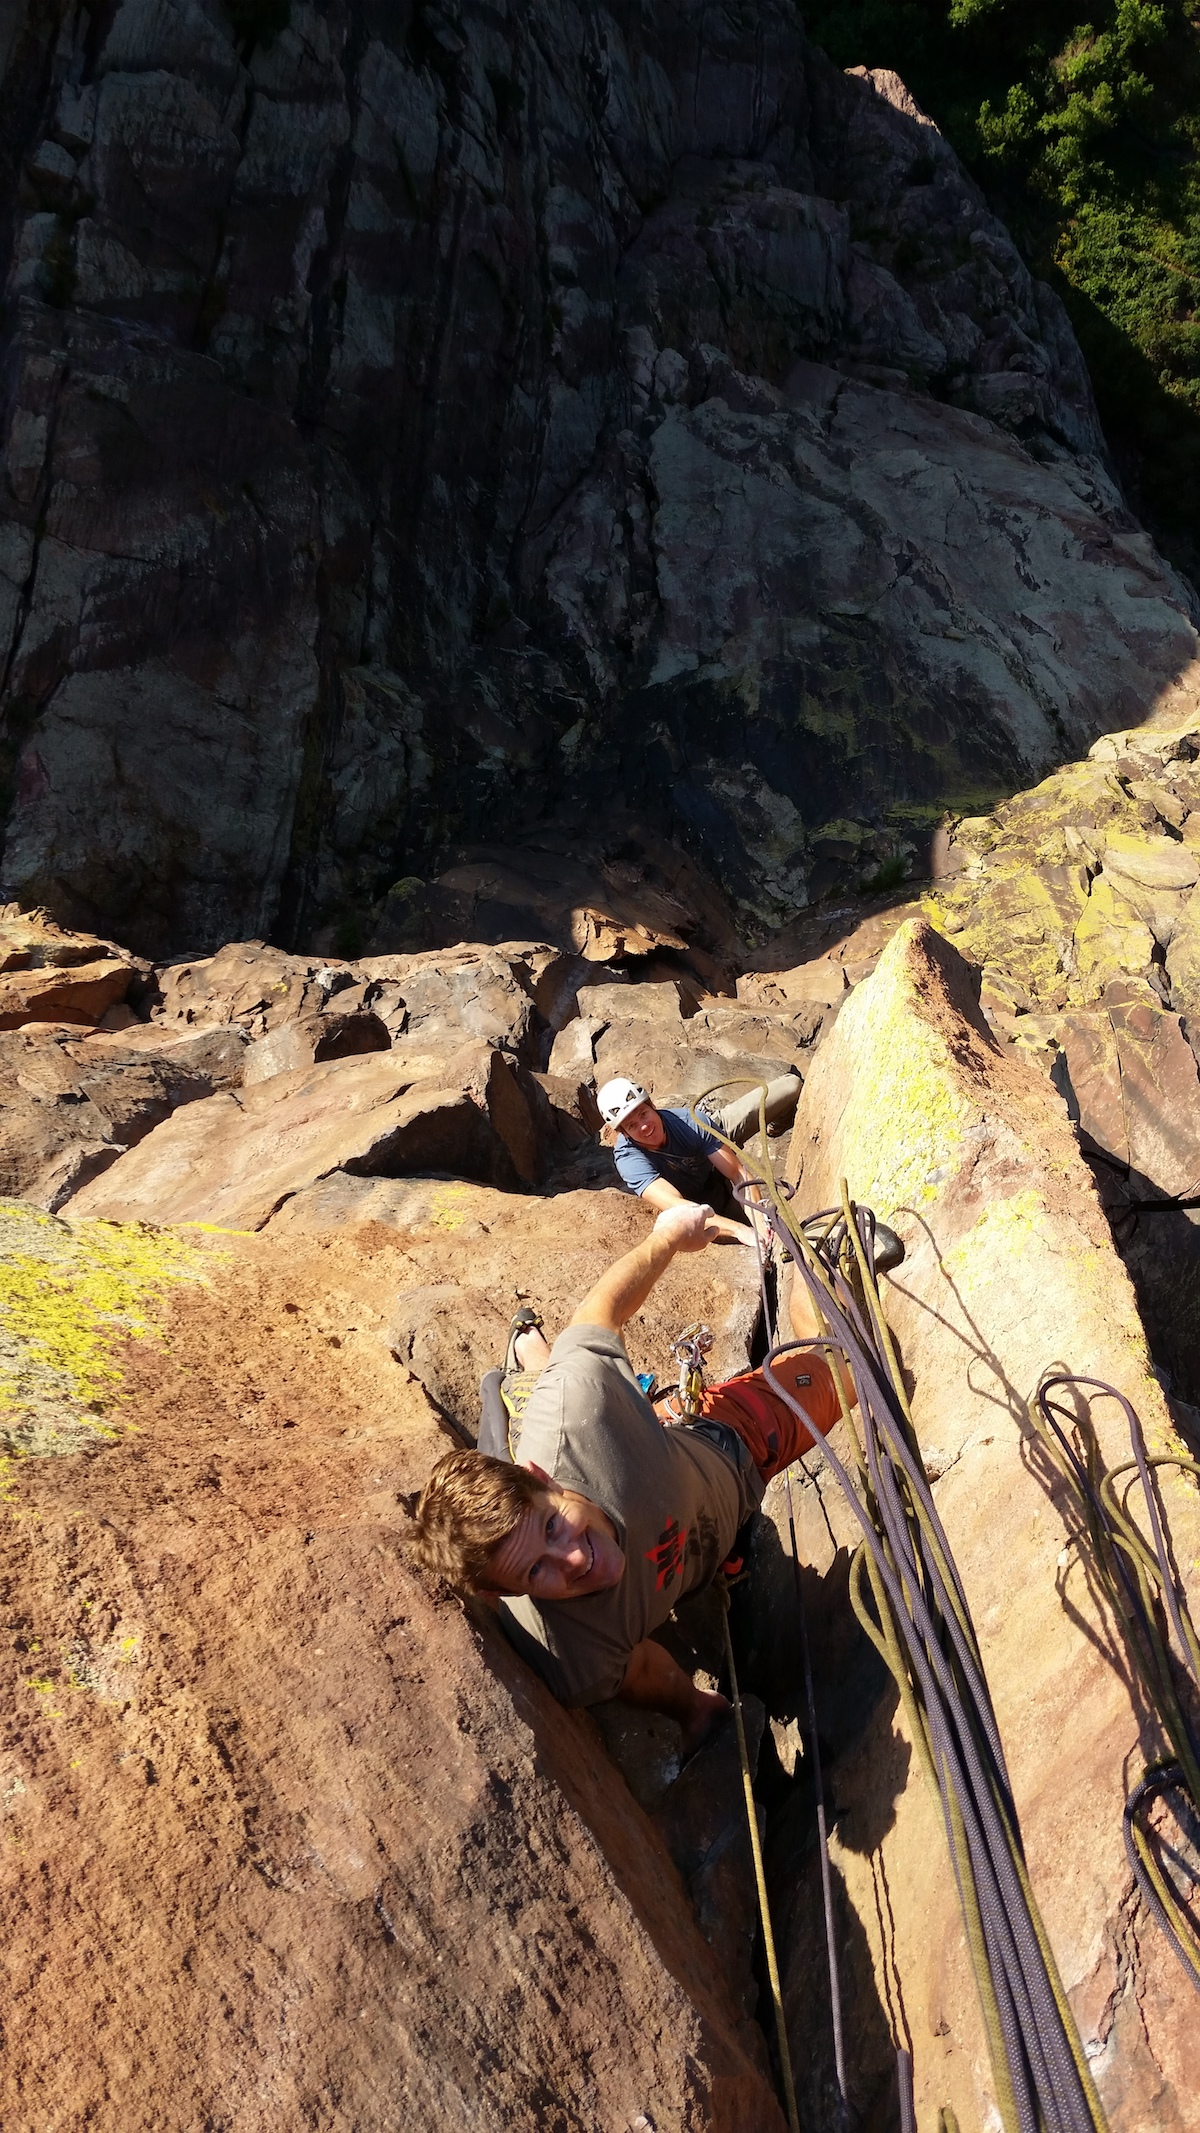 Wells and Robinson on the Naked Edge in Eldorado Canyon, Colorado. [Photo] Courtesy of Stefan Griebel